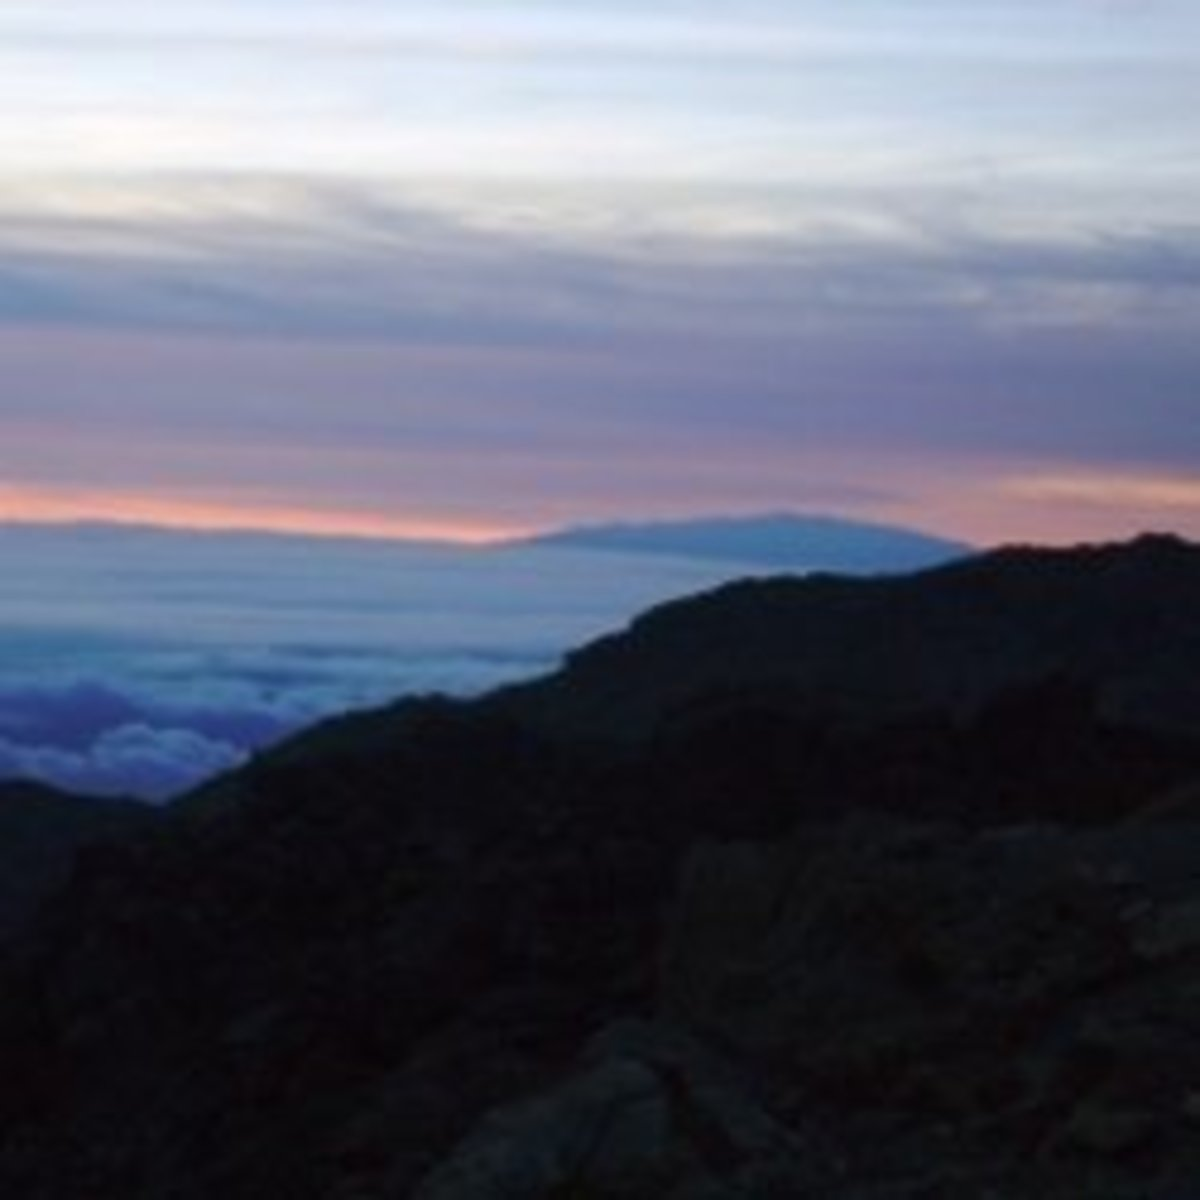 A Maui Sunrise and Haleakala Volcano Downhill Bike Trip